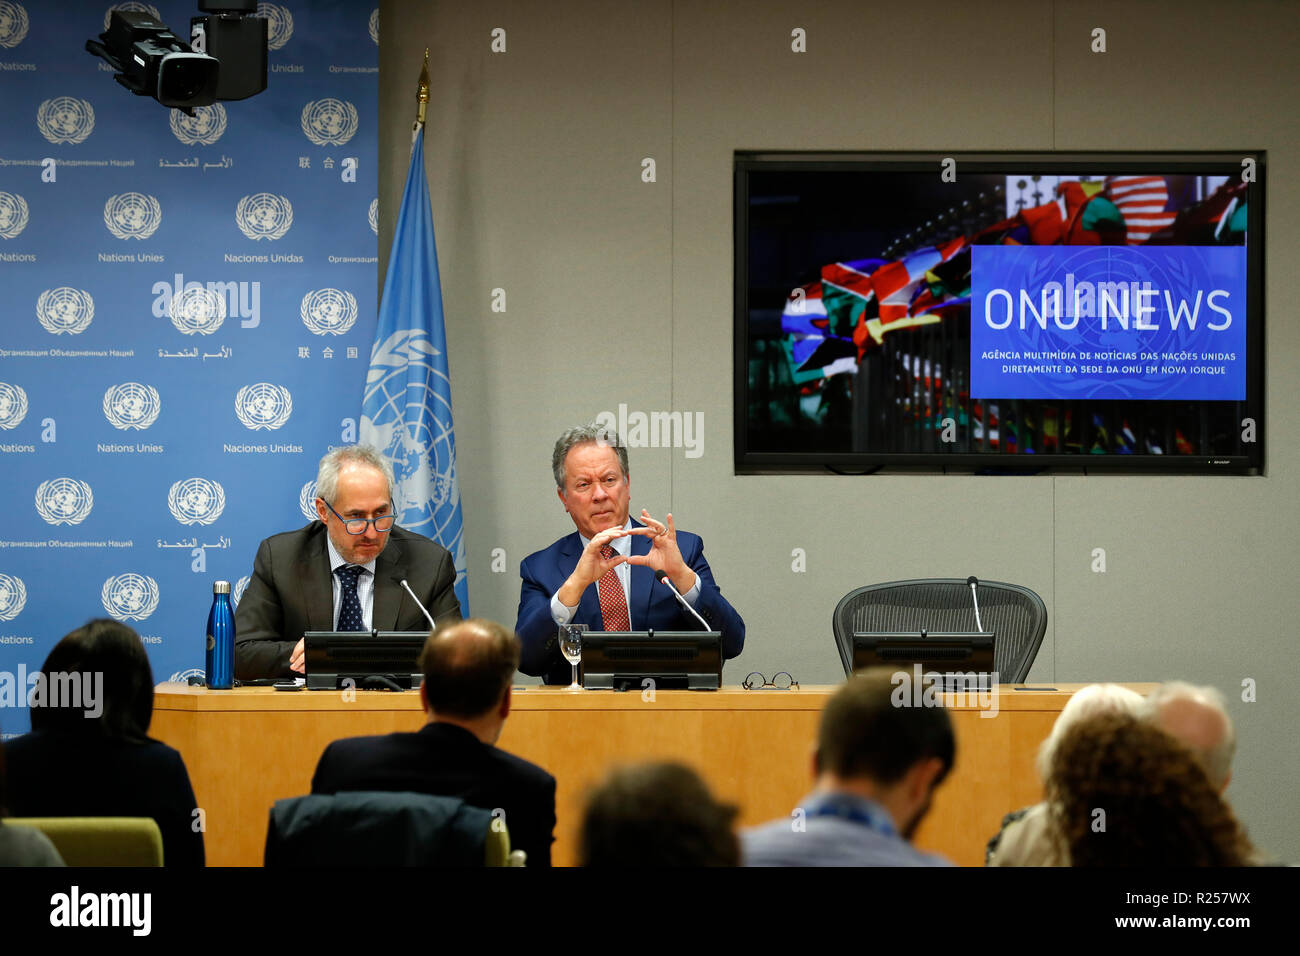 United Nations United Nations Headquarters In New York 16th Nov 2018 David Beasley R Rear Executive Director Of The World Food Programme Wfp Briefs The Journalists On His Recent Trip To Yemen